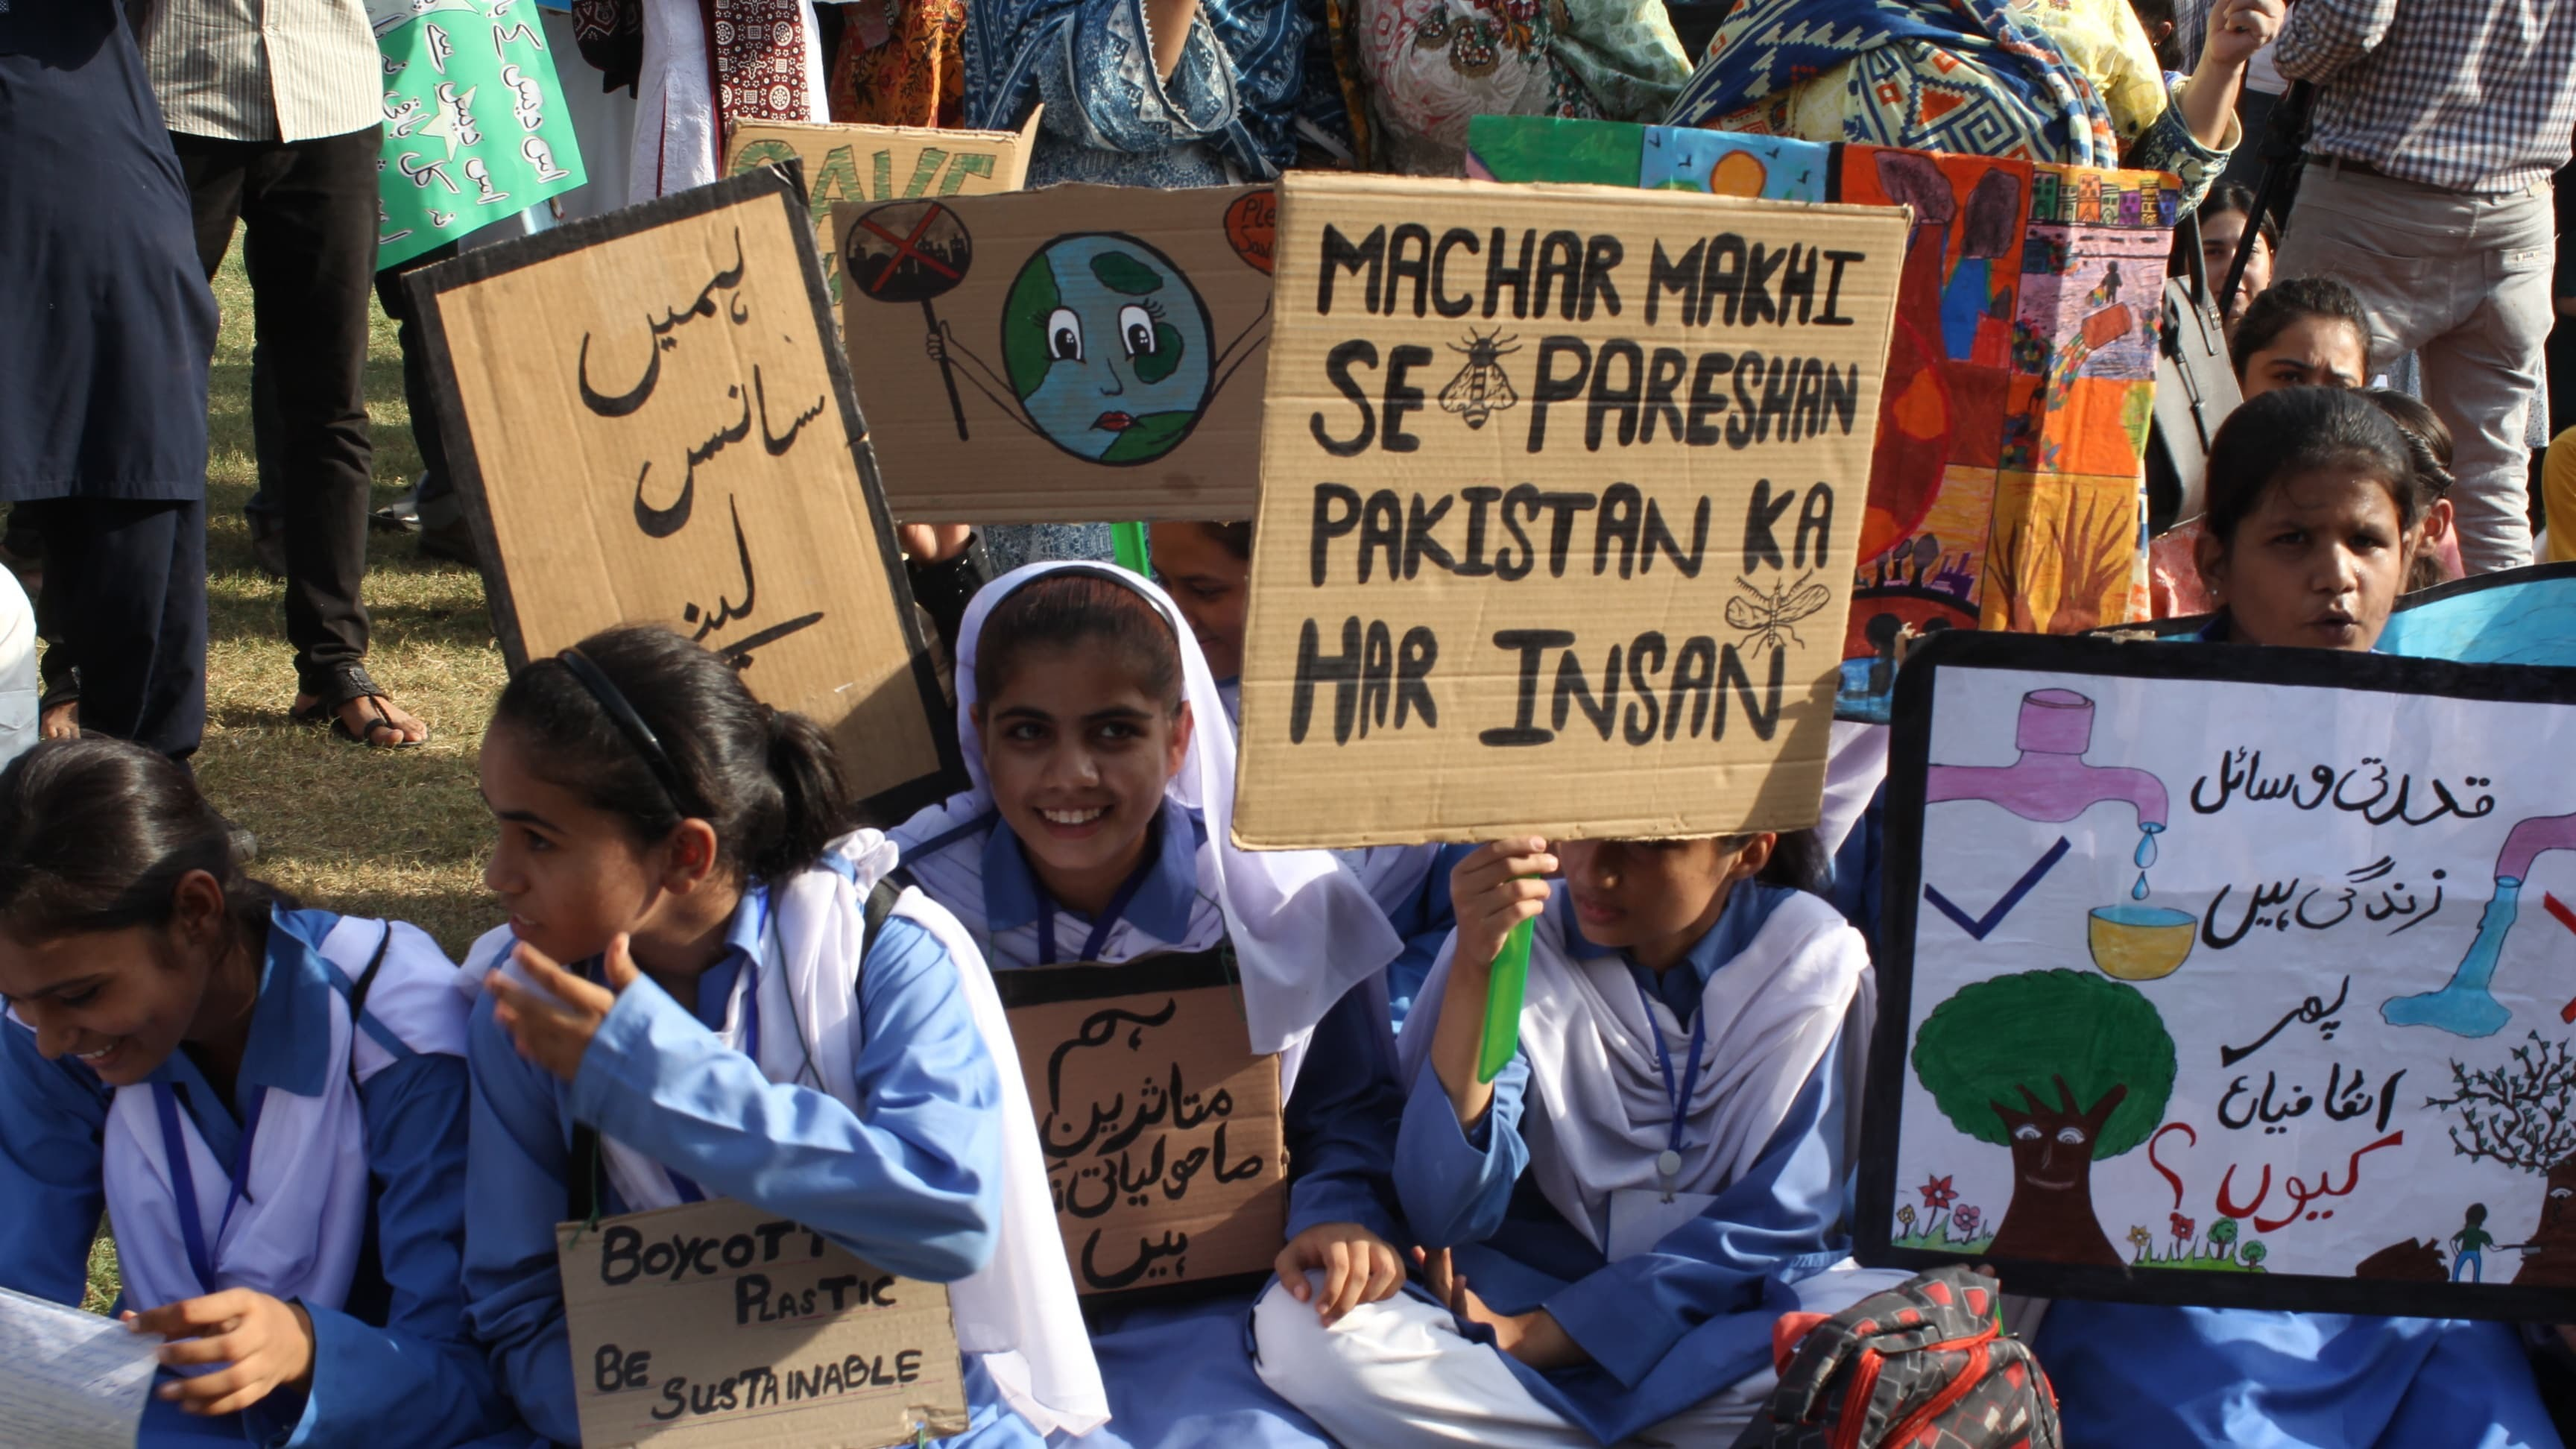 Students at the climate march in Karachi. — Photo by Kamran Nafees